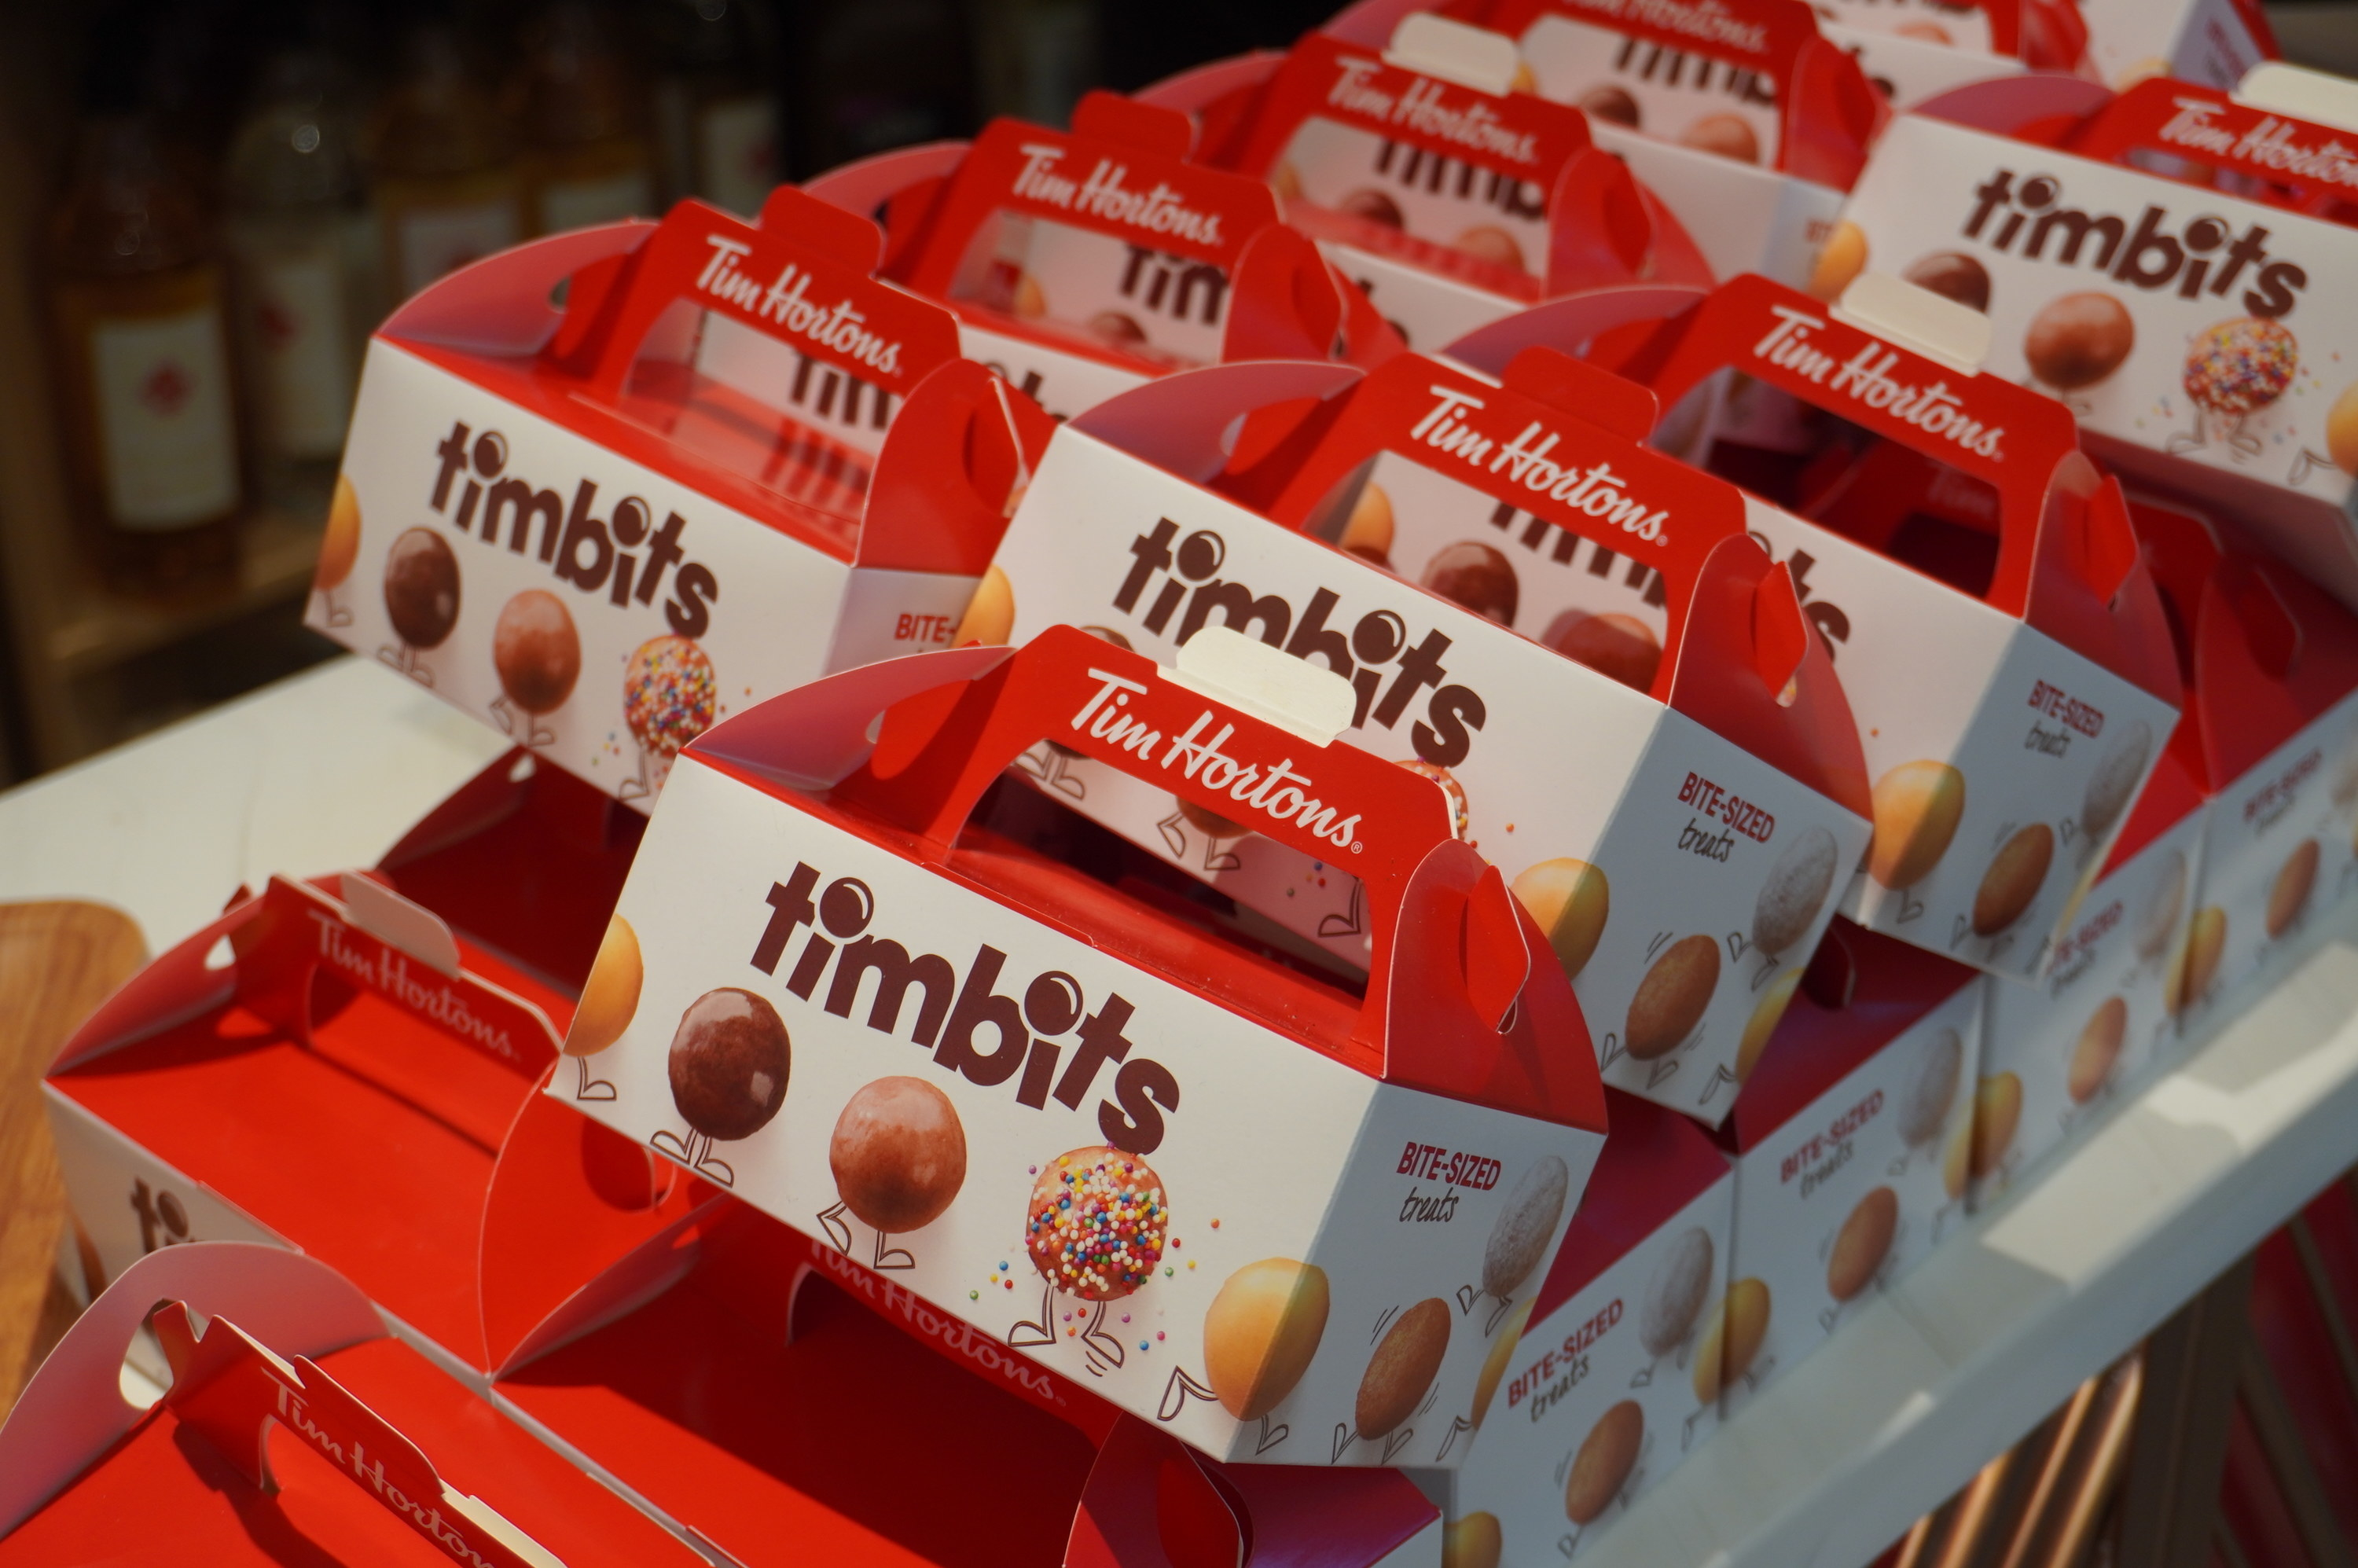 A red and white takeout box of Tim Hortons Timbits are shown with photos of the mini donut holes on the box